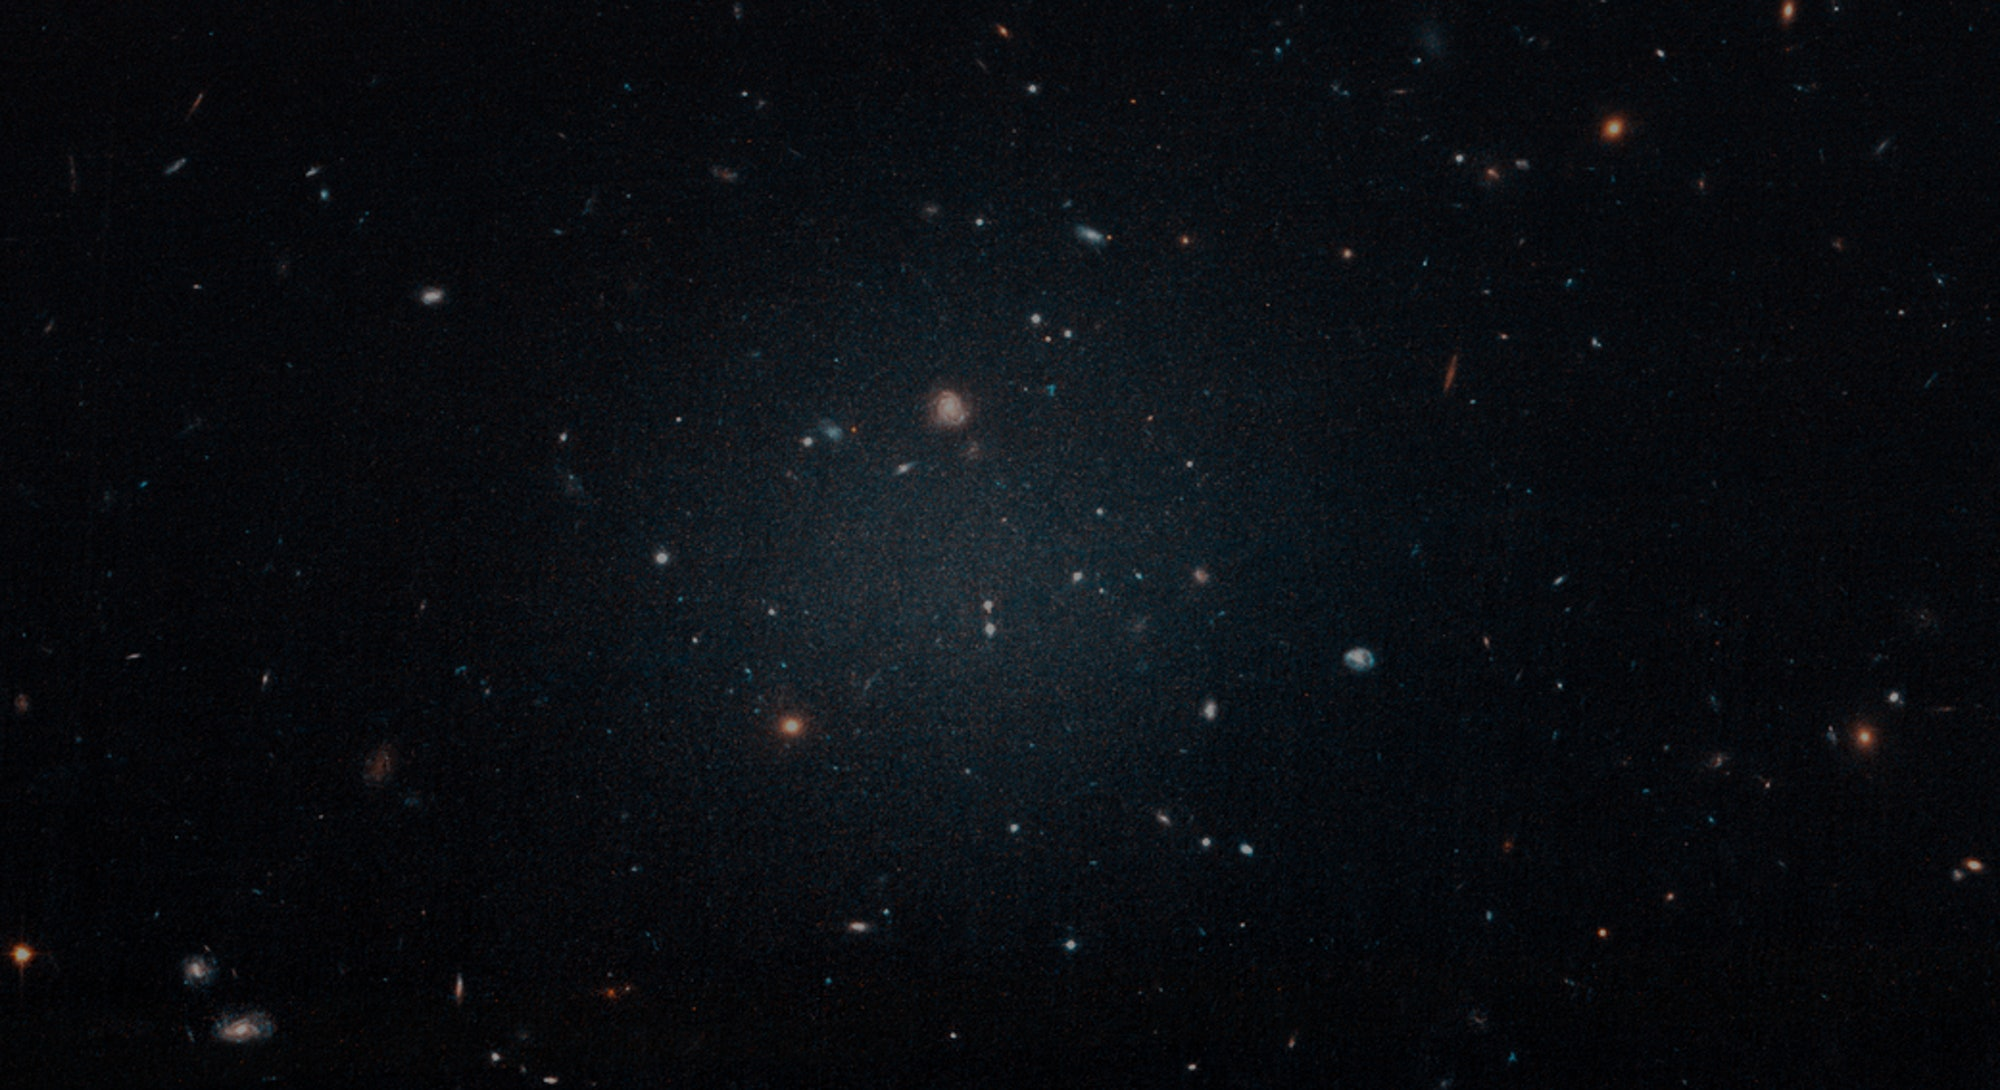 An image of a ghostly ultradiffuse galaxy